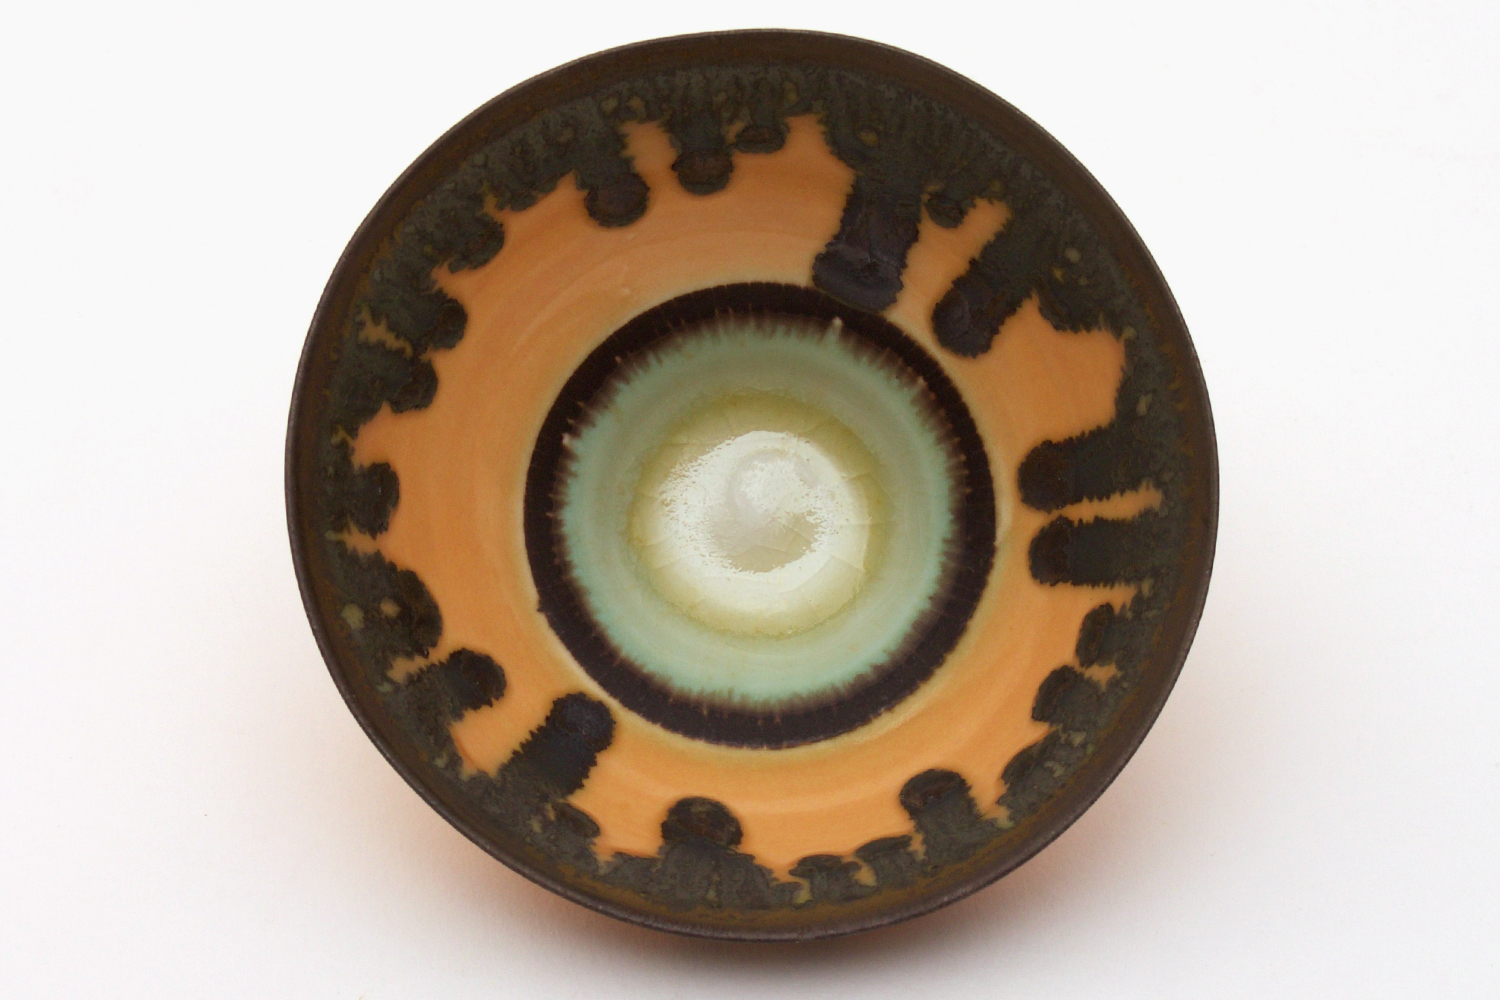 Peter Wills Porcelain Bowl 114